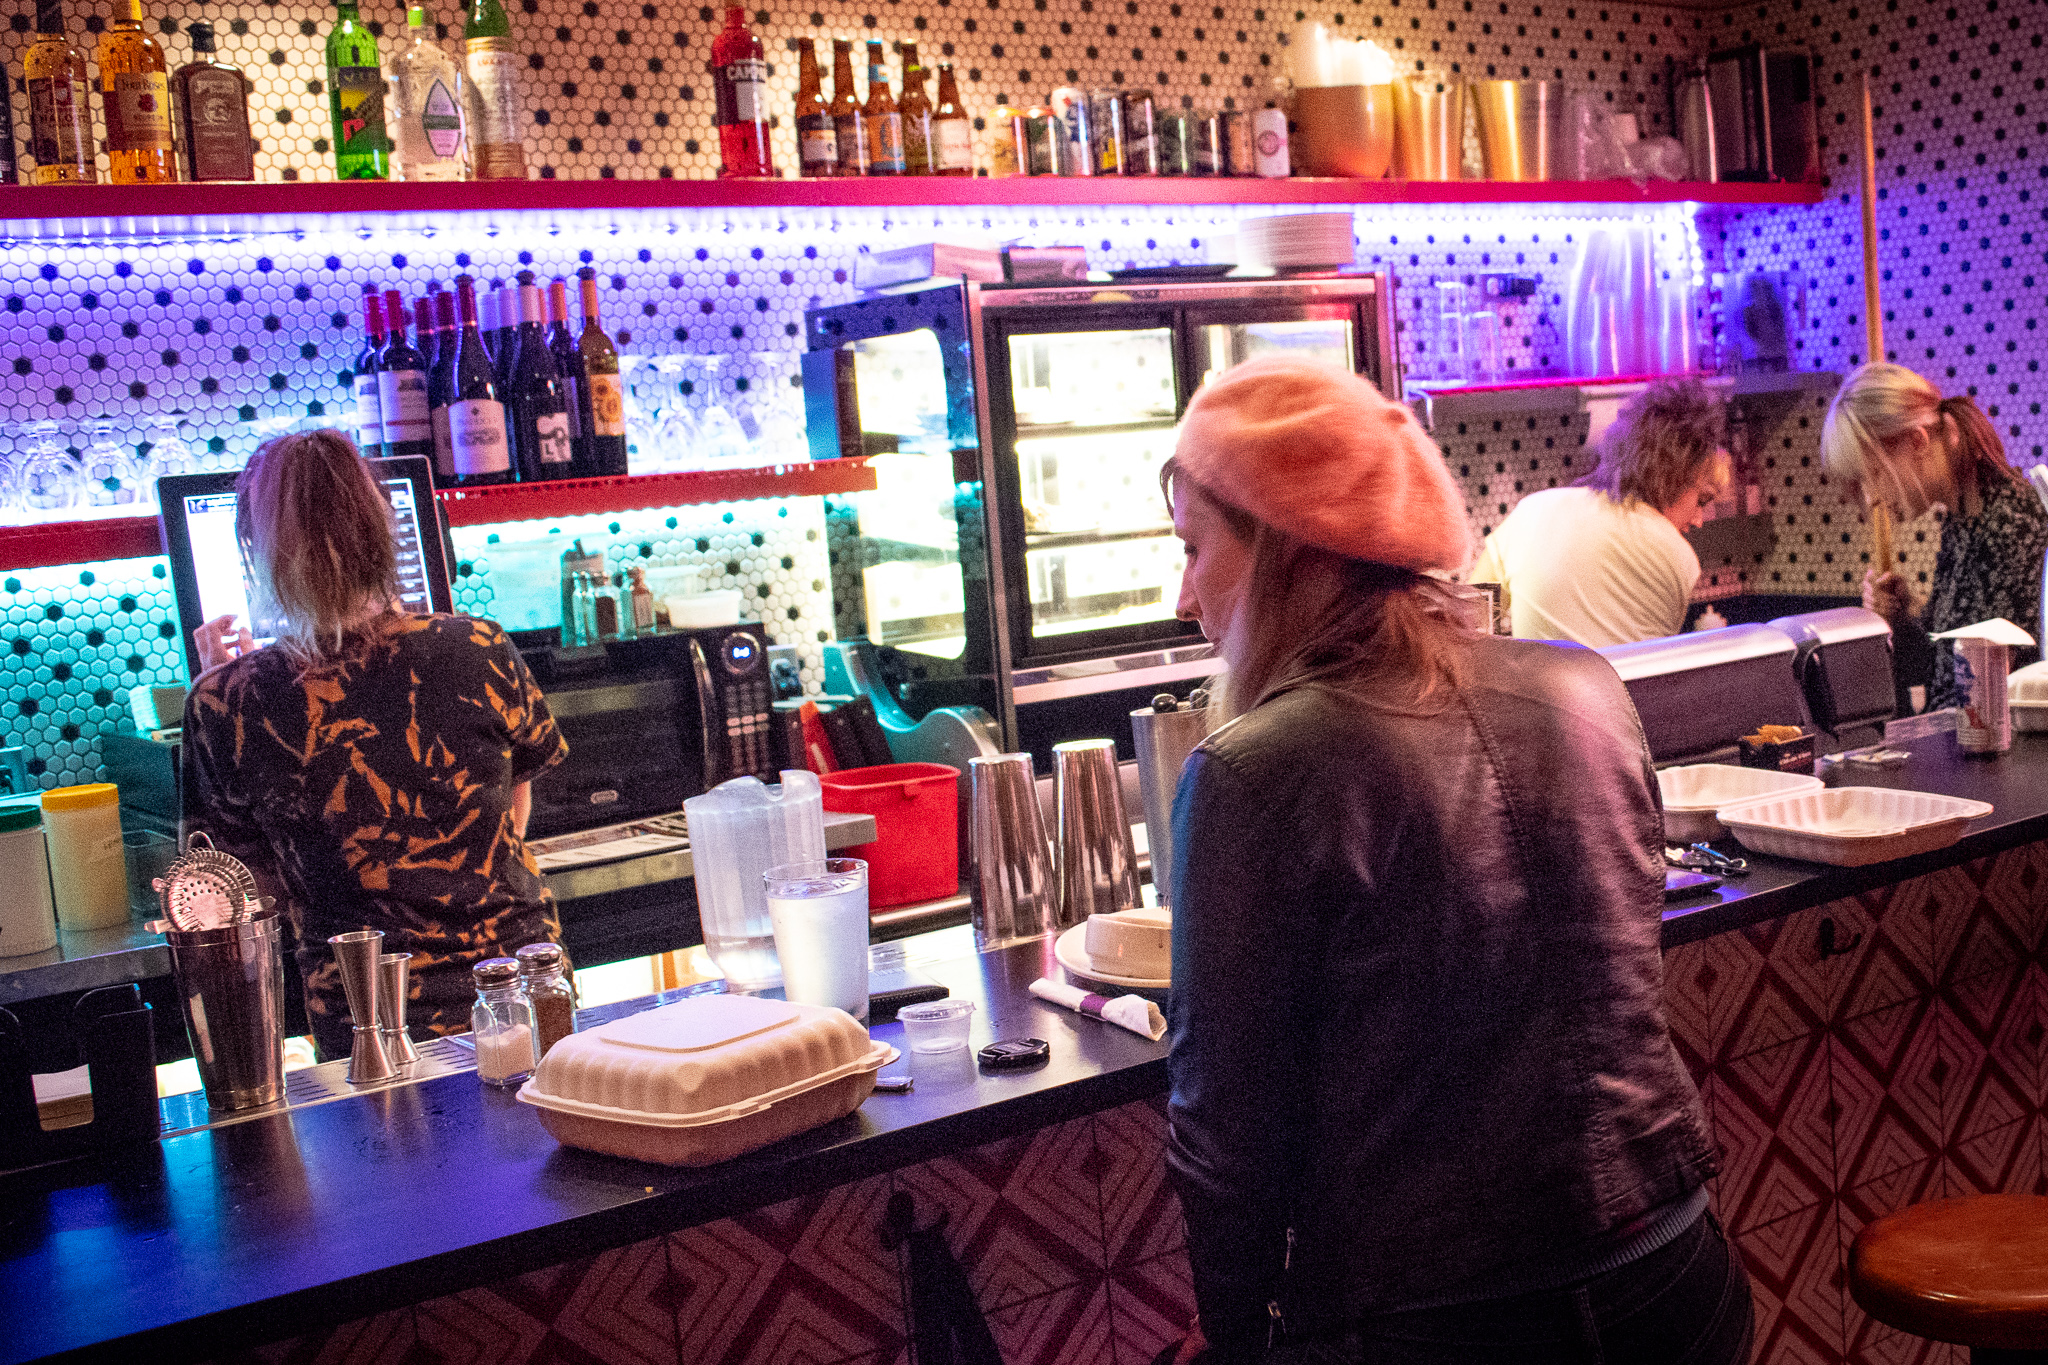 Uprooted-Traveler-Vegan-Food-Guide-Chicago-Chicago-Diner-counter-boystown.jpg